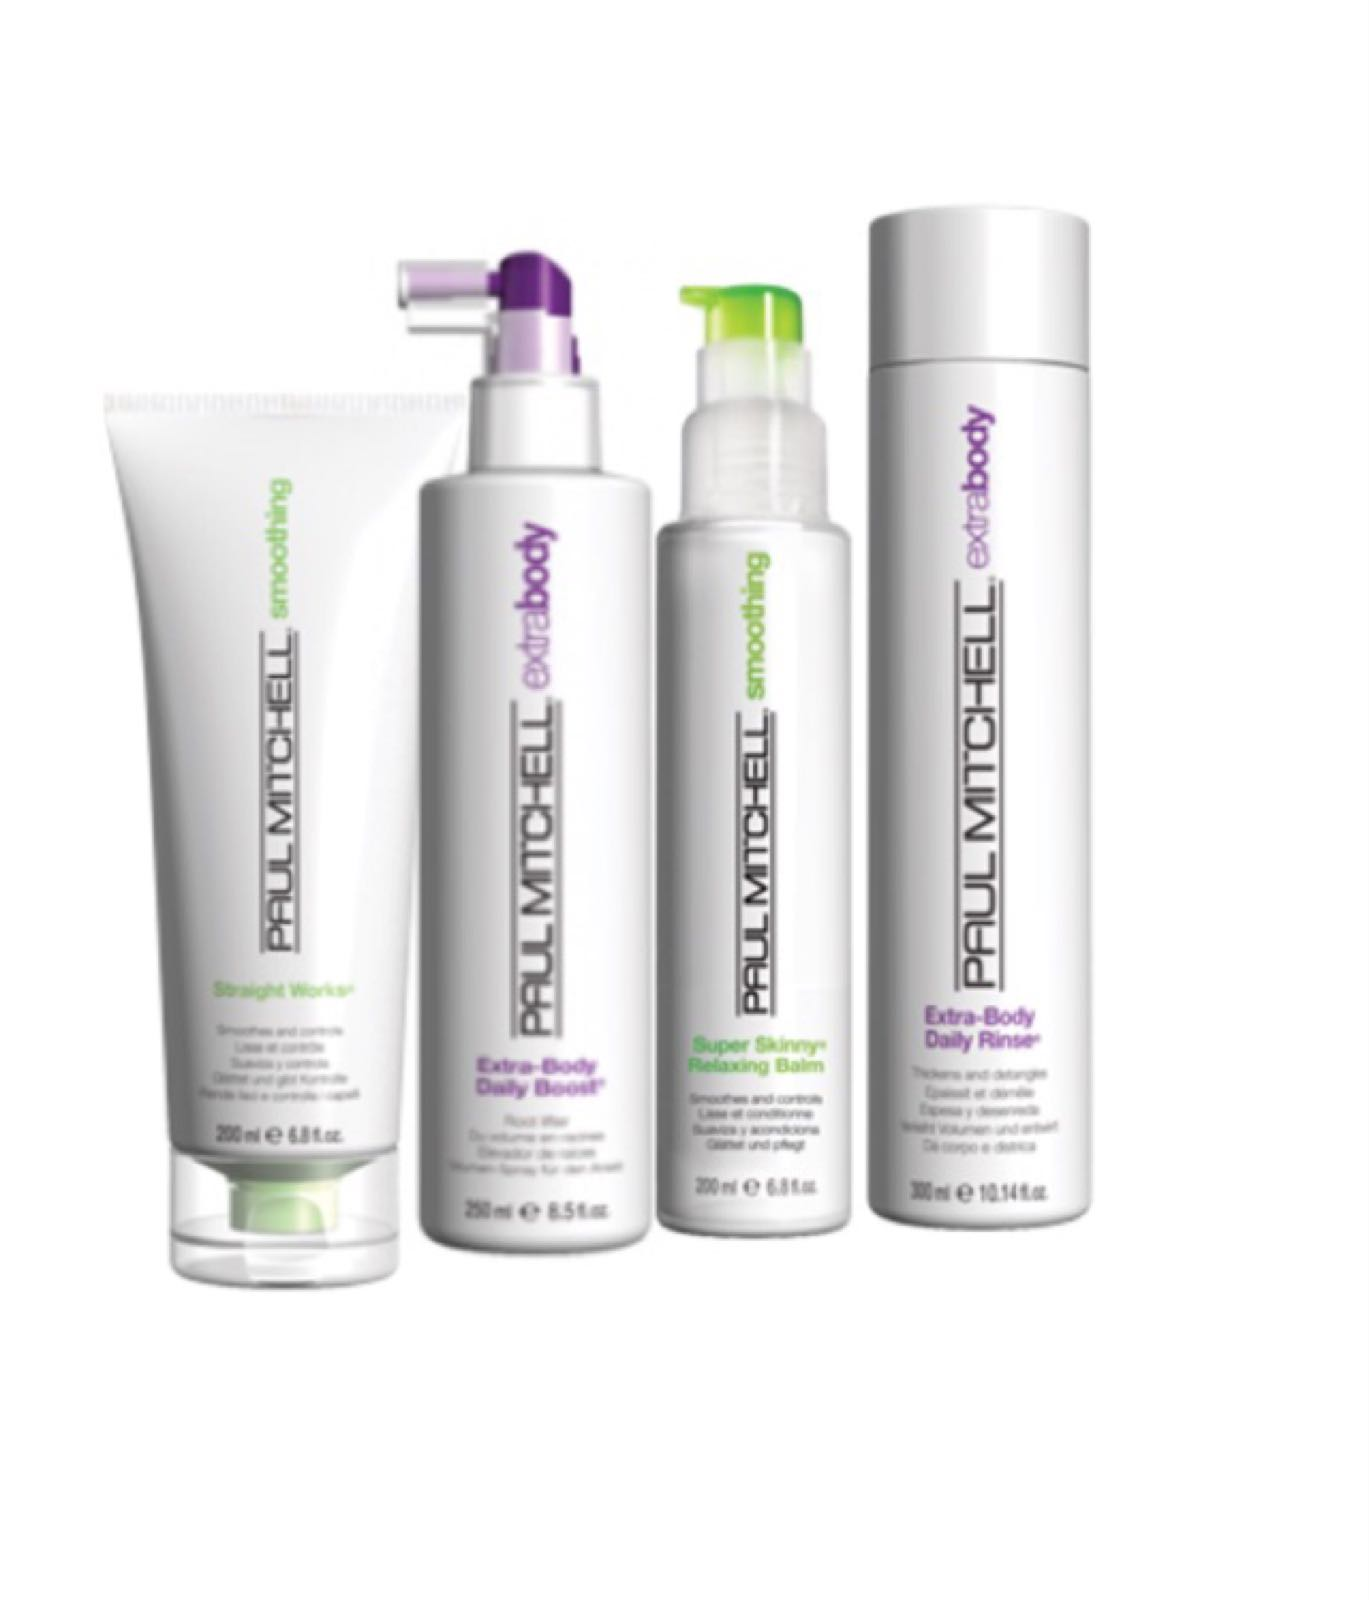 Paul Mitchell Xtra Body